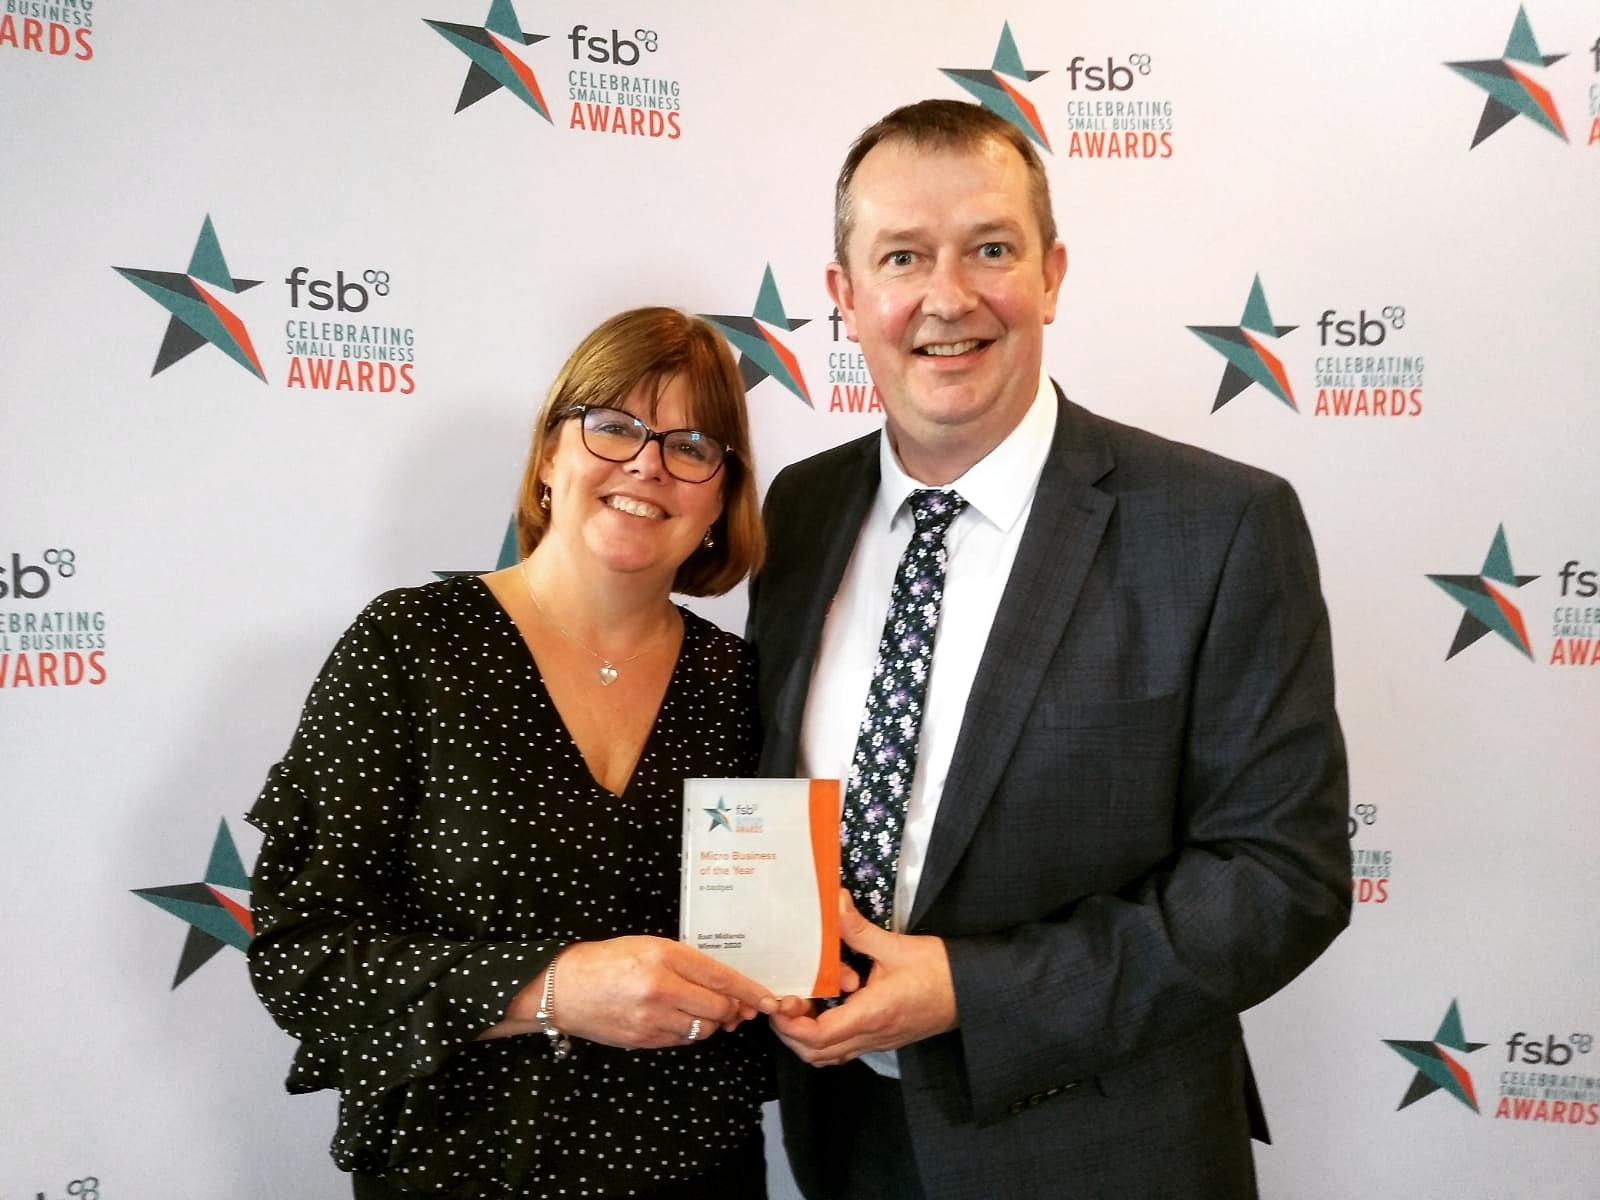 Andrew and Philippa Vear winning Micro Business of the Year regional award from Federation of Small Business FSB